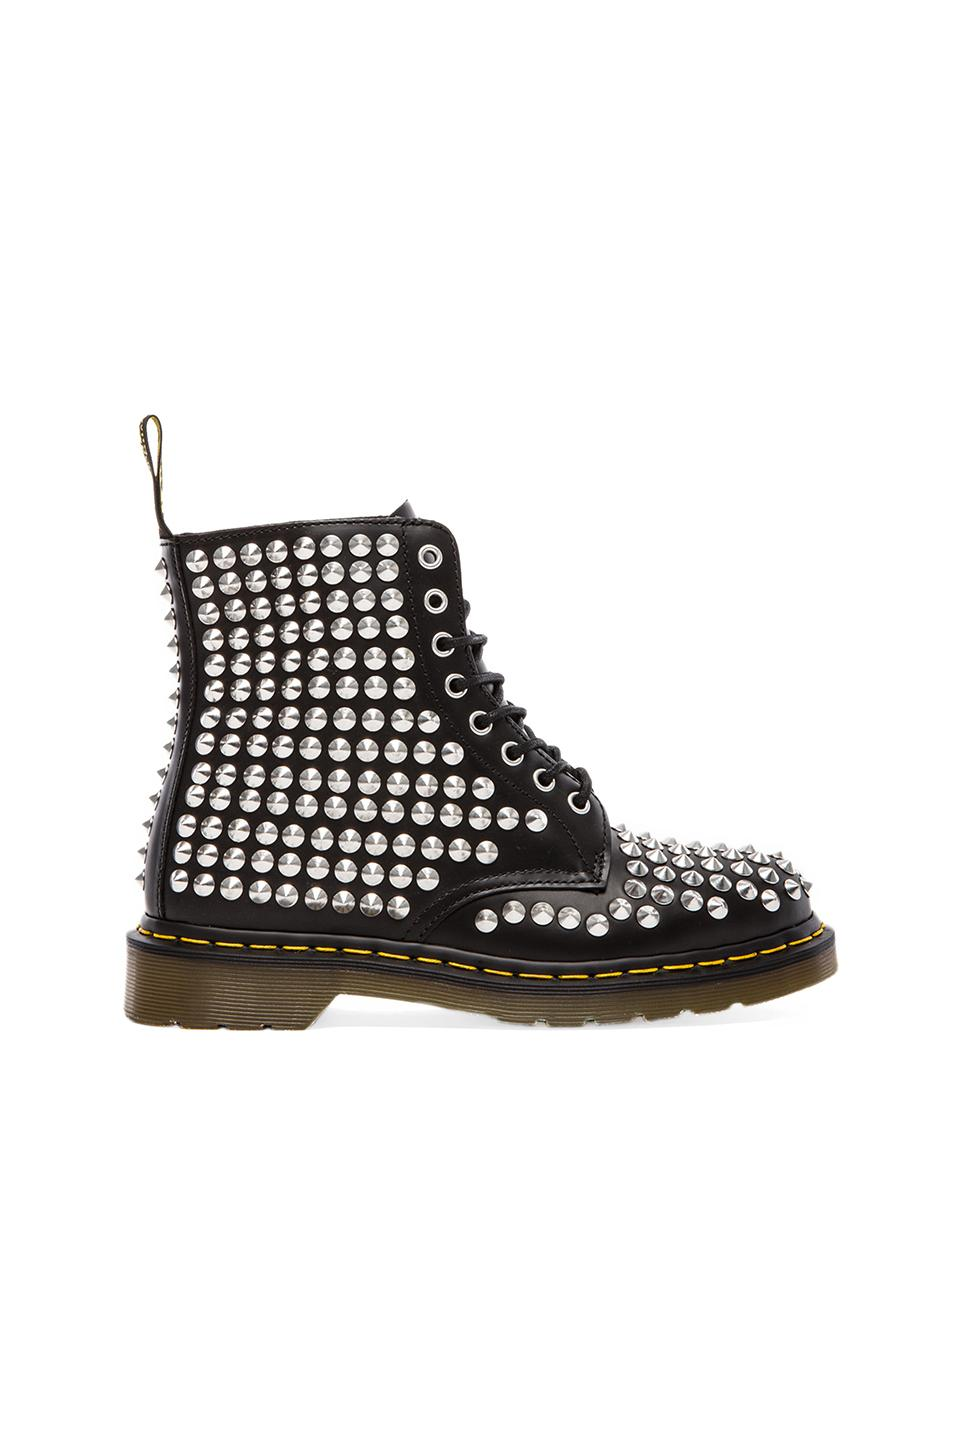 Dr. Martens Spike All Stud 8-Eye Boot in Black